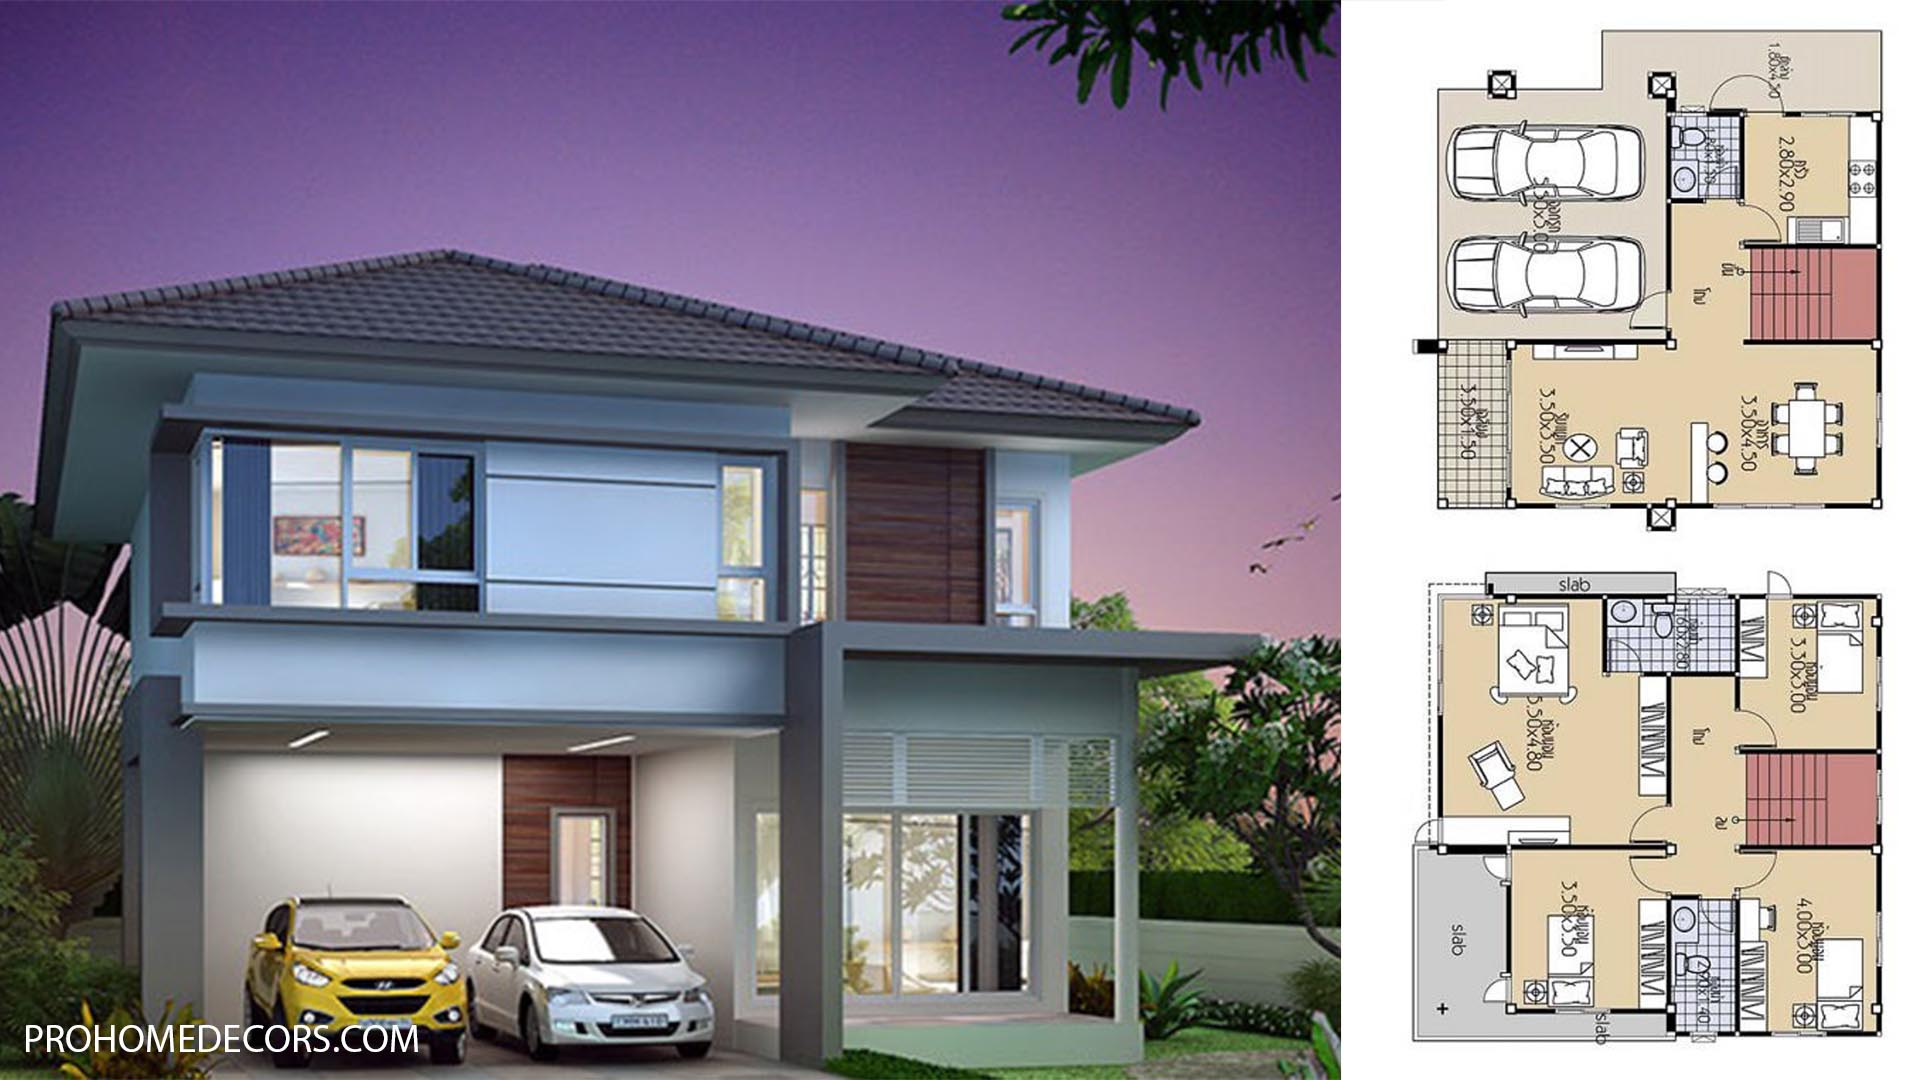 House Plans 9×9.5 with 4 Beds